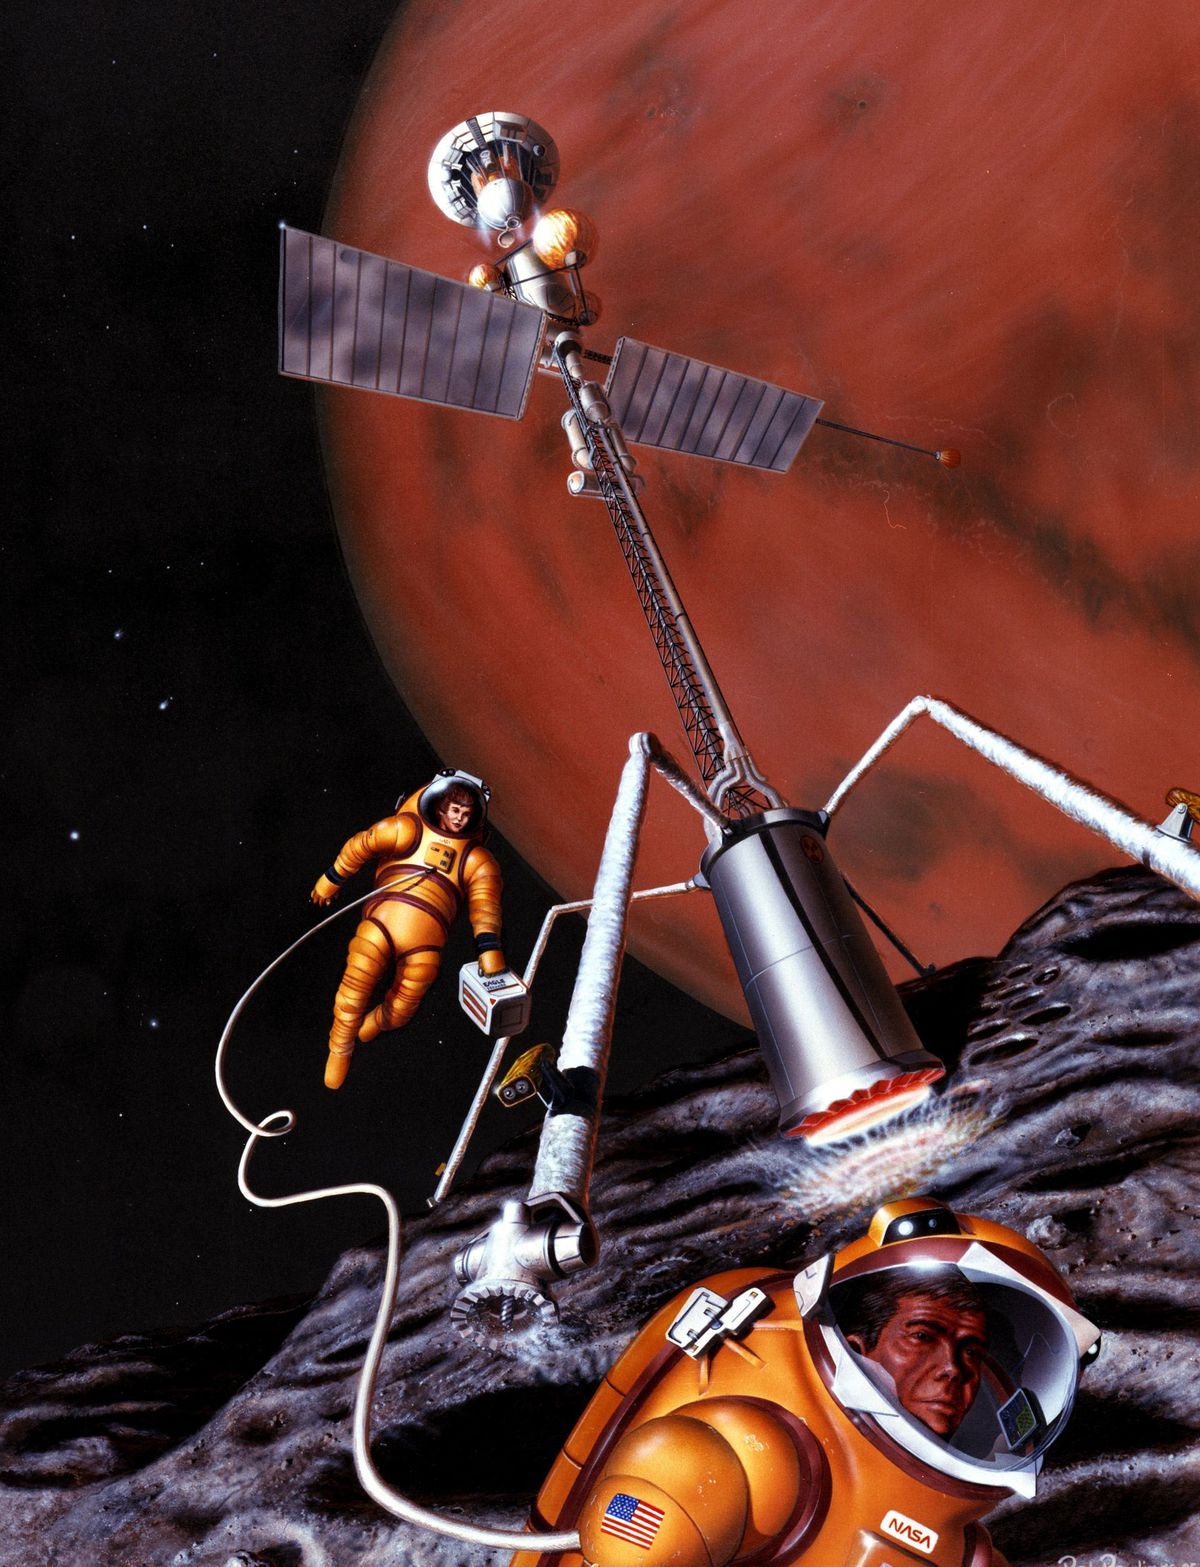 1986 NASA painting of humans mining Mars's Moon Phobos for resources - the same idea could be used to mine for resource for an orbital colony exploring Mars by telerobotics